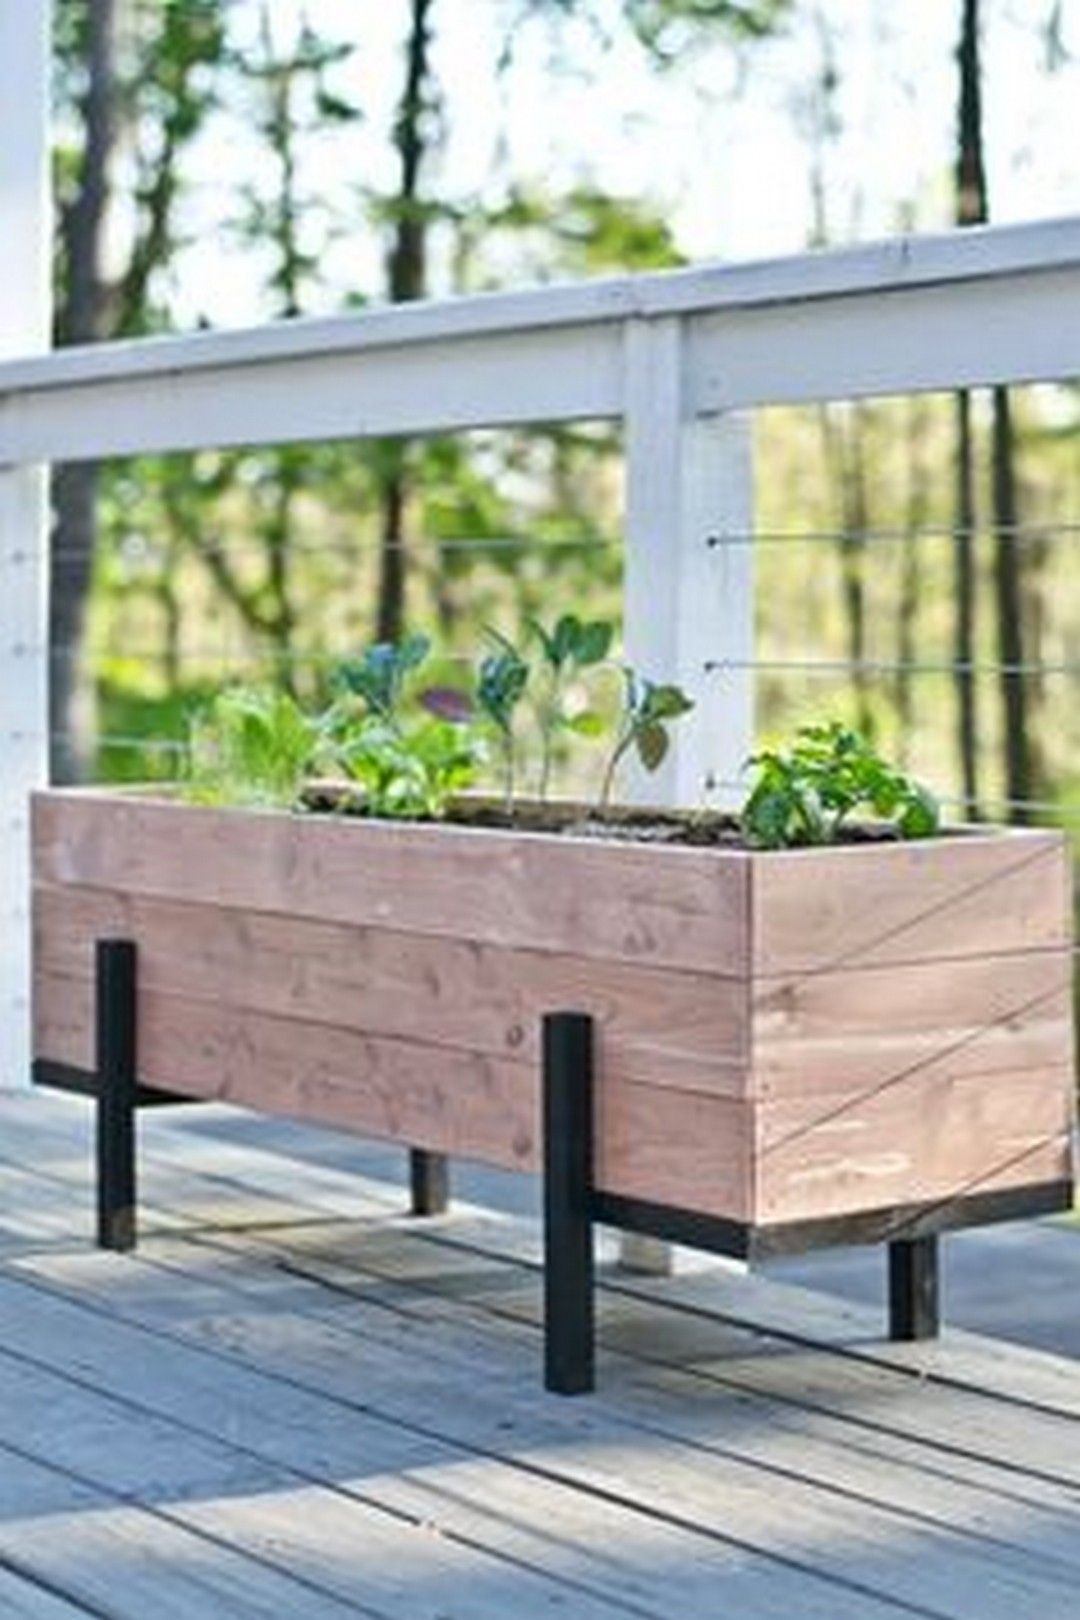 Diy Rustic Wood Planter Box Ideas For Your Amazing Garden Https Www Onechitecture Com   Diy Rustic Wood Planter Box Ideas Amazing Garden